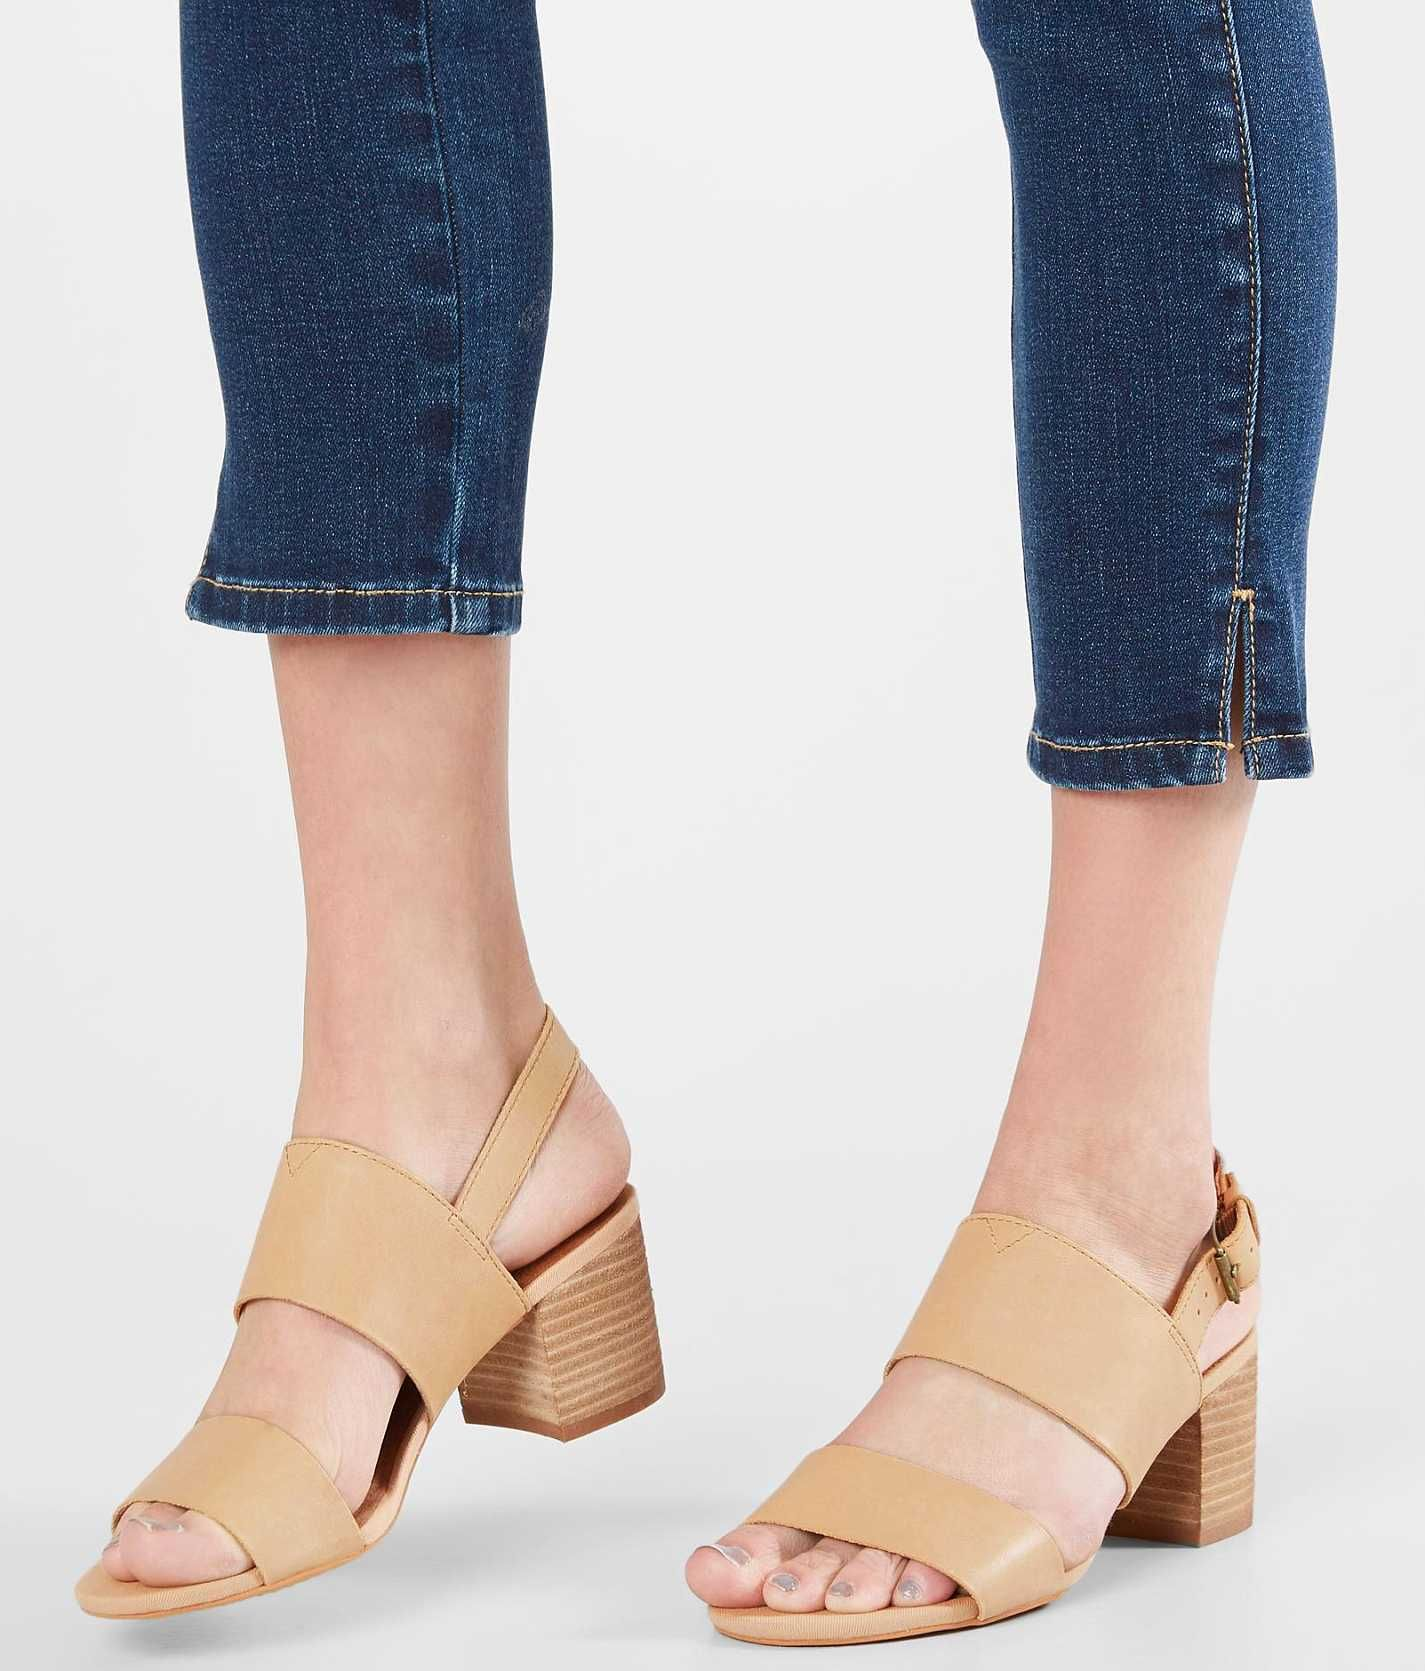 14f81201e7a TOMS Poppy Heeled Sandal - Women s Shoes in Honey Leather